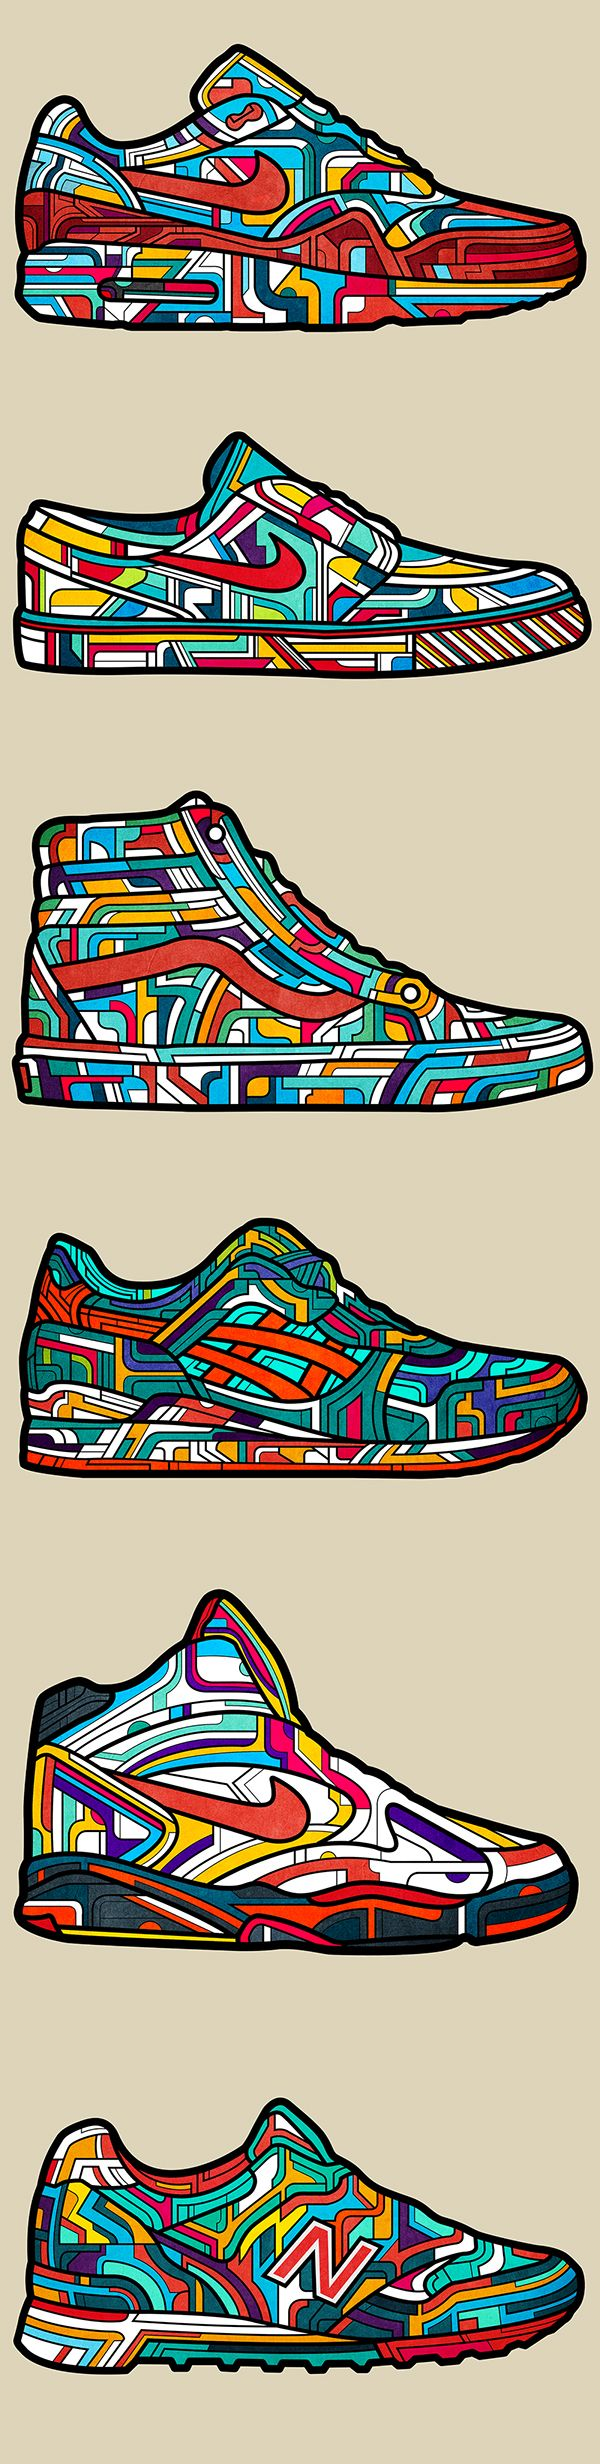 Classic Sneakers Collection by Van Orton Design, via Behance